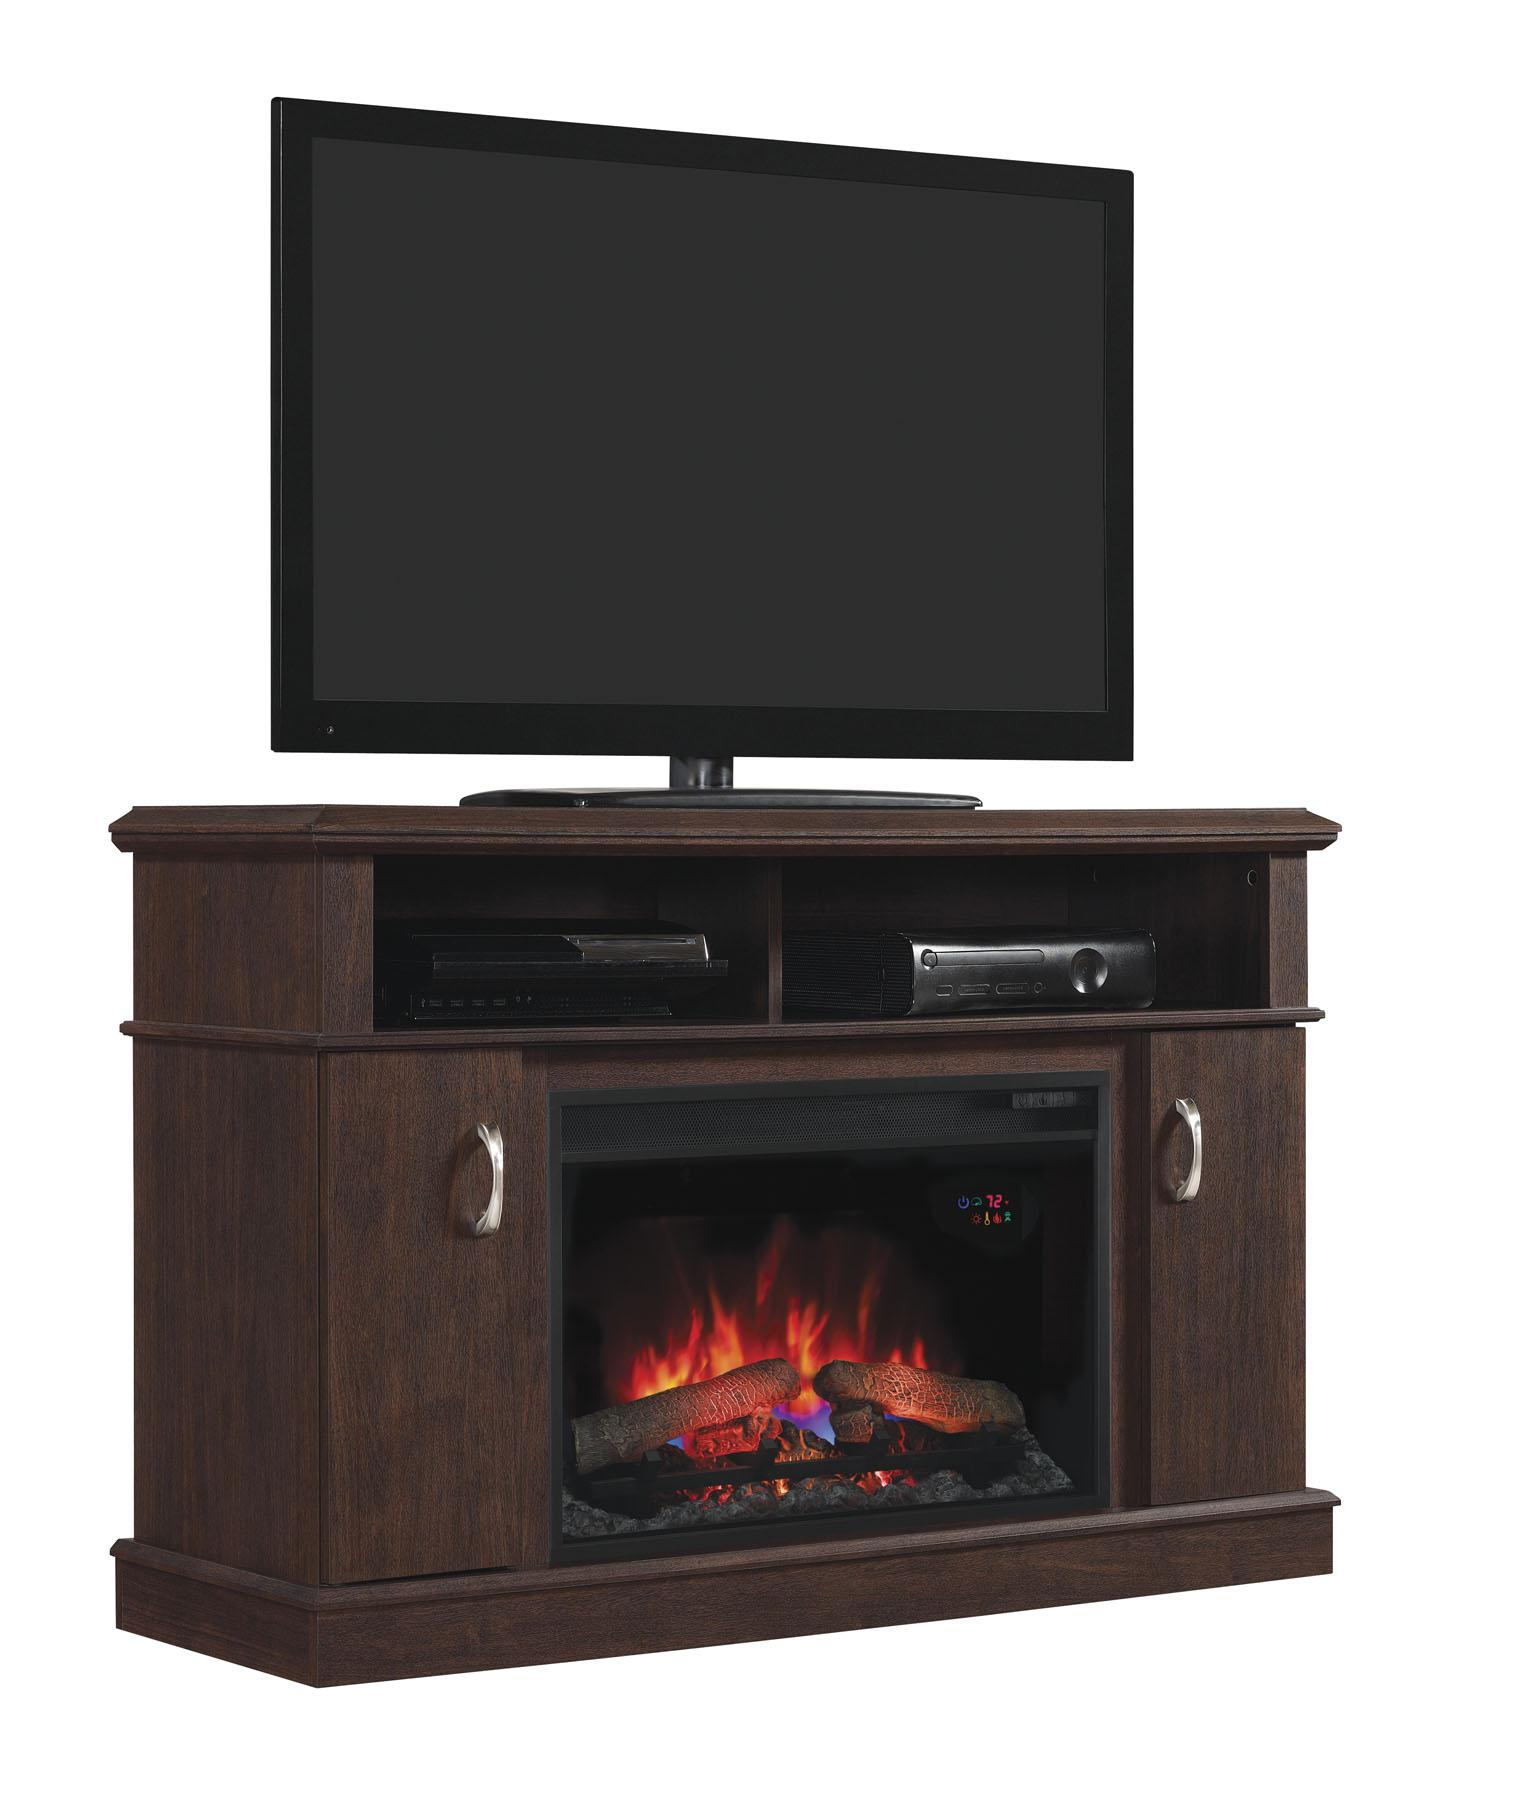 Flame 26MM5516-PC72 Dwell Fireplace Mantel, 26-Inch (MANTEL ONLY